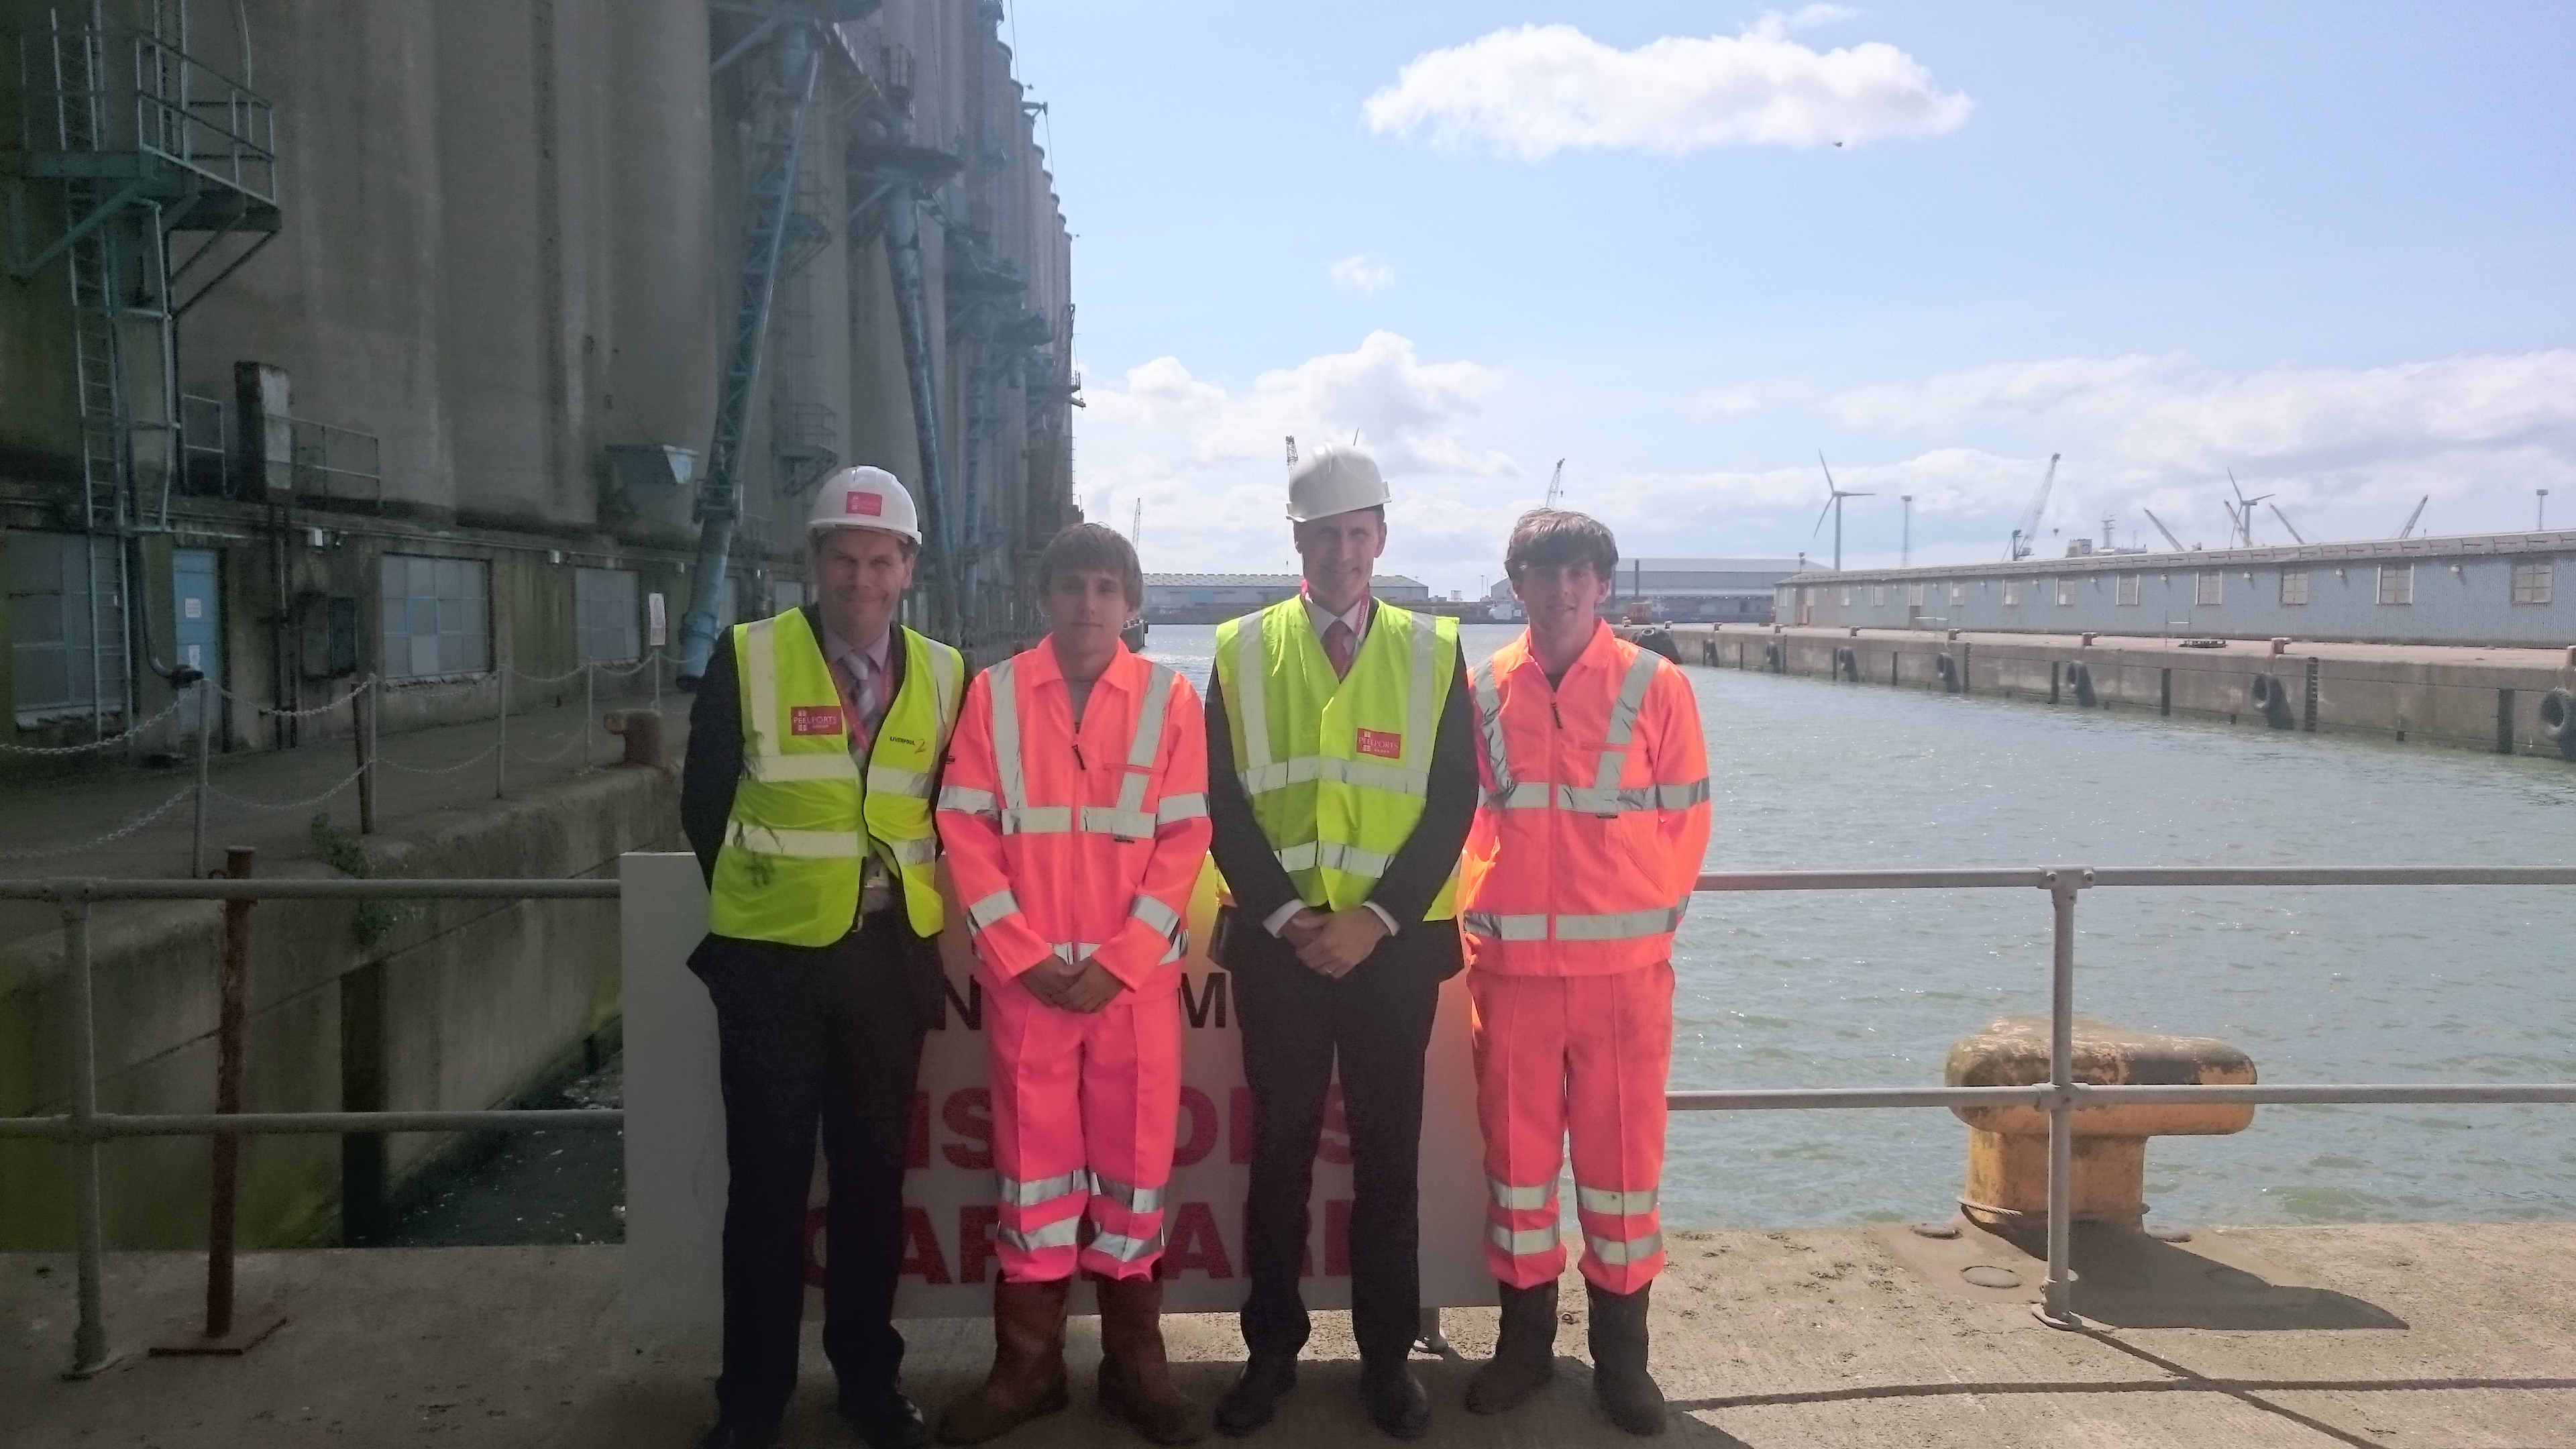 Sefton Central Labour MP Bill Esterson with Peel Ports' terminal manager Richard Watson and apprentices Karl Jones and Jon King.